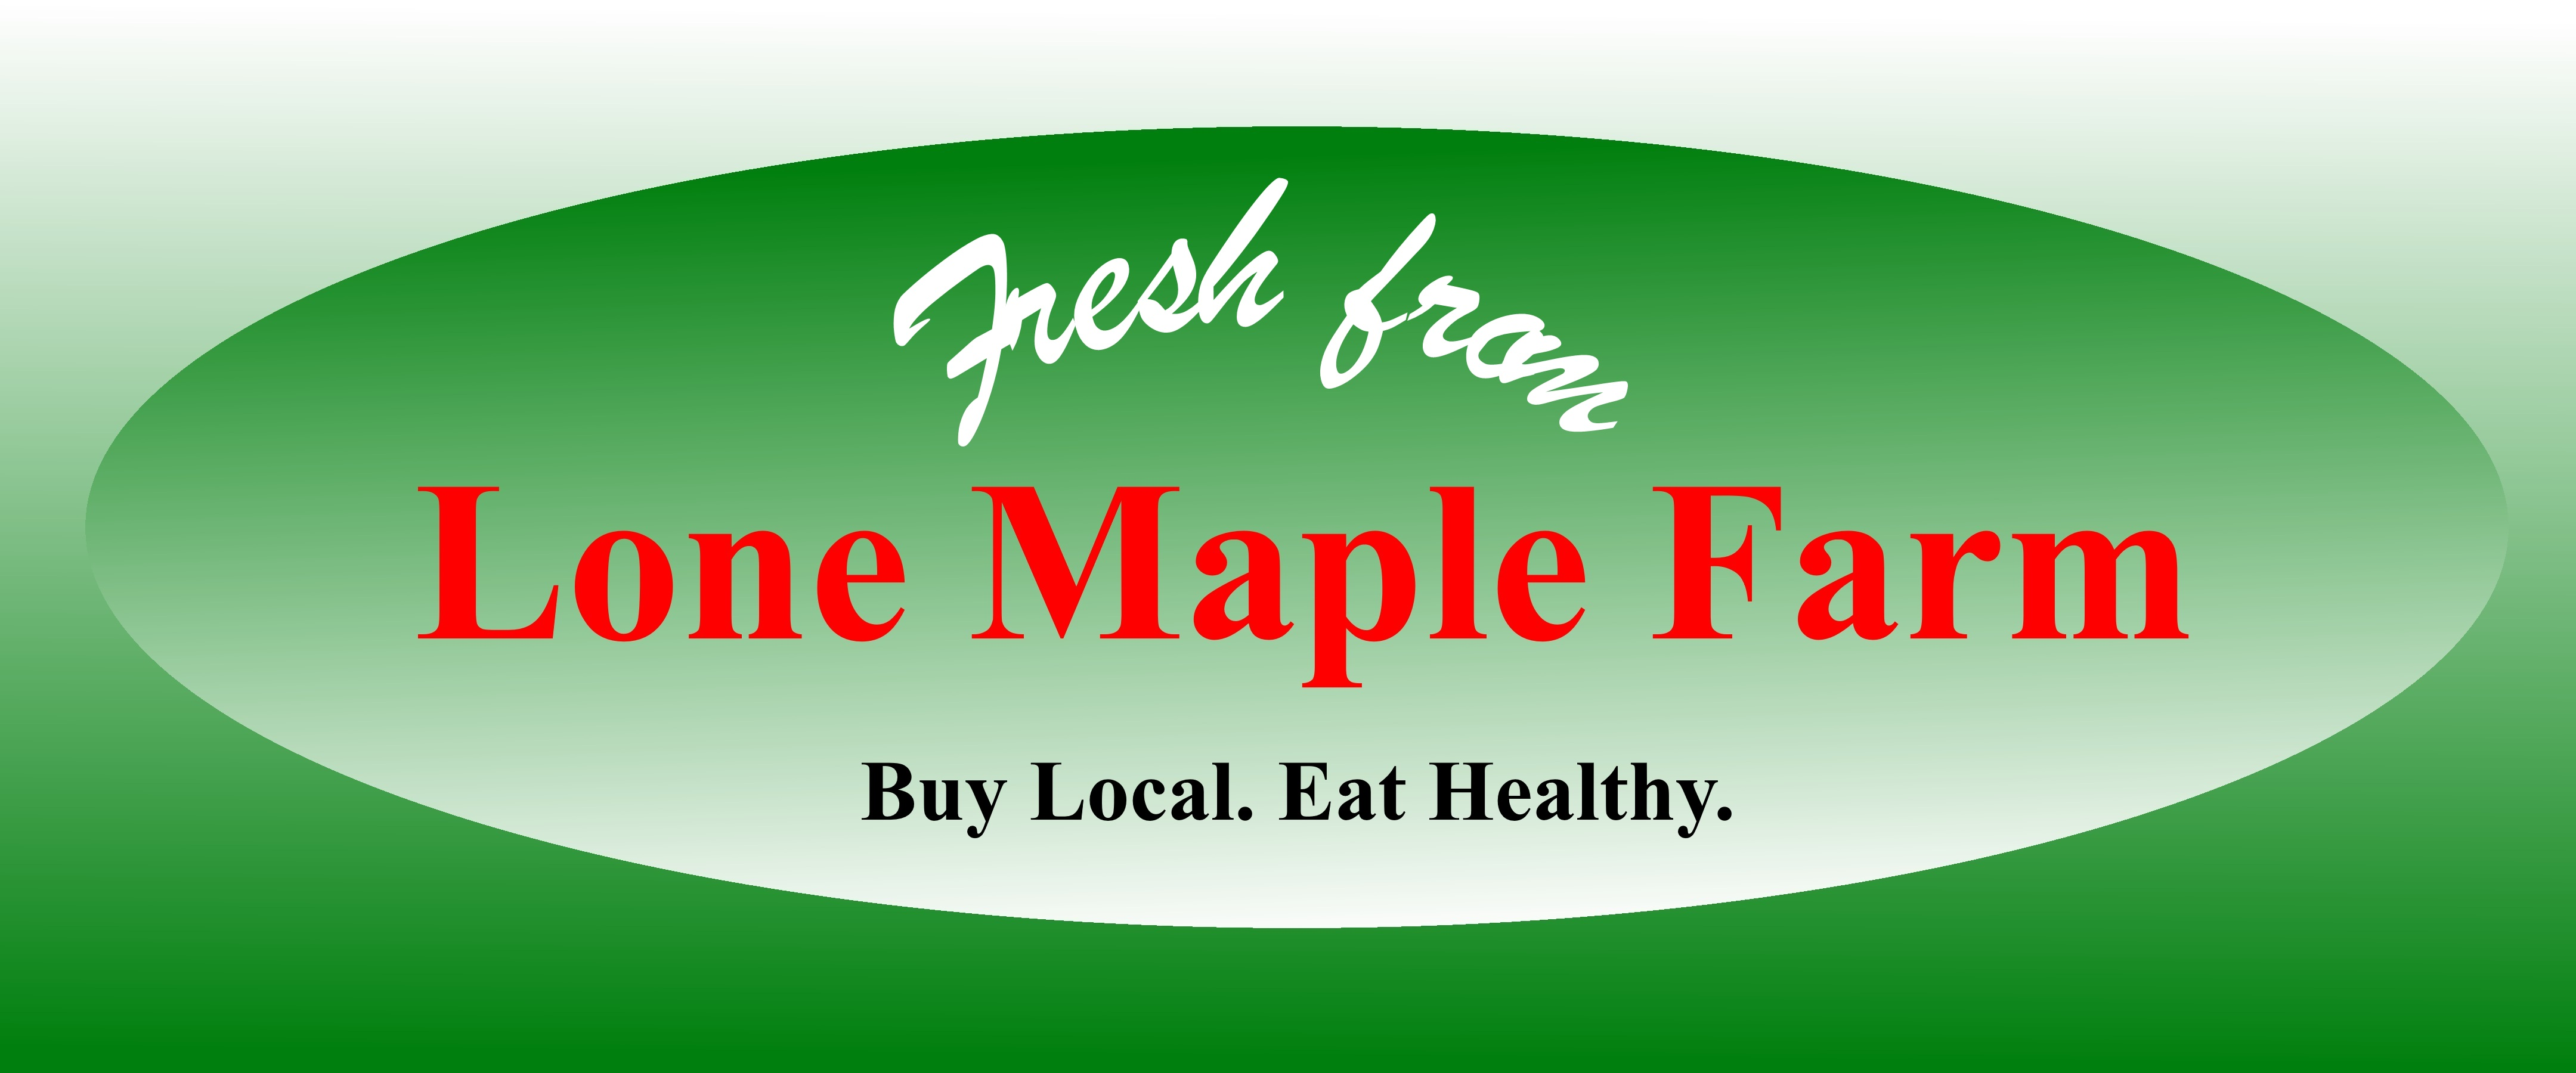 Lone Maple Farm, LLC